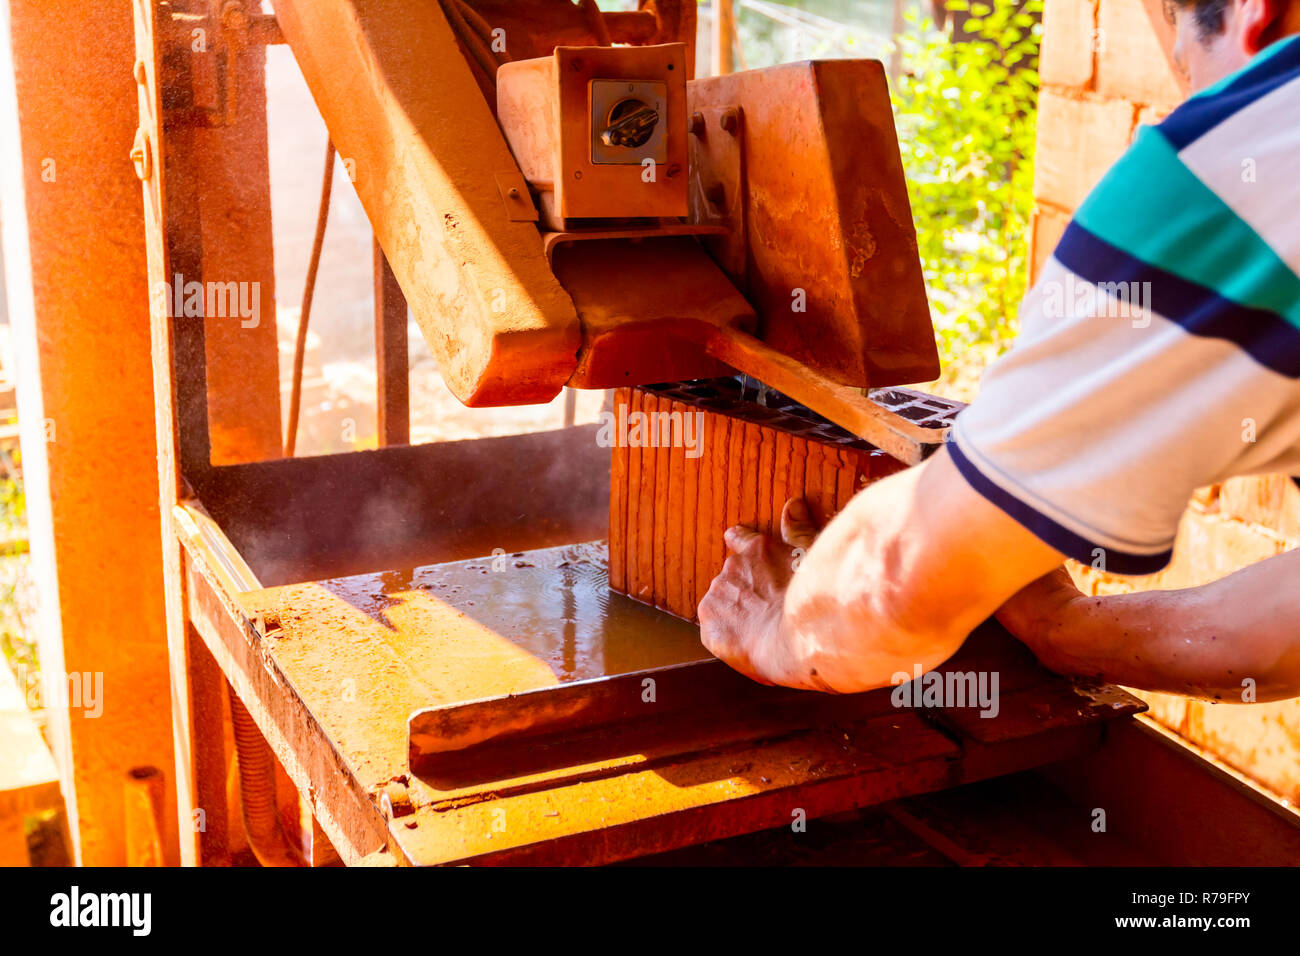 Worker is using power tool to makes clean precise cut in red brick, block. It uses abrasive action to slice through material as the saw rotates at hig - Stock Image